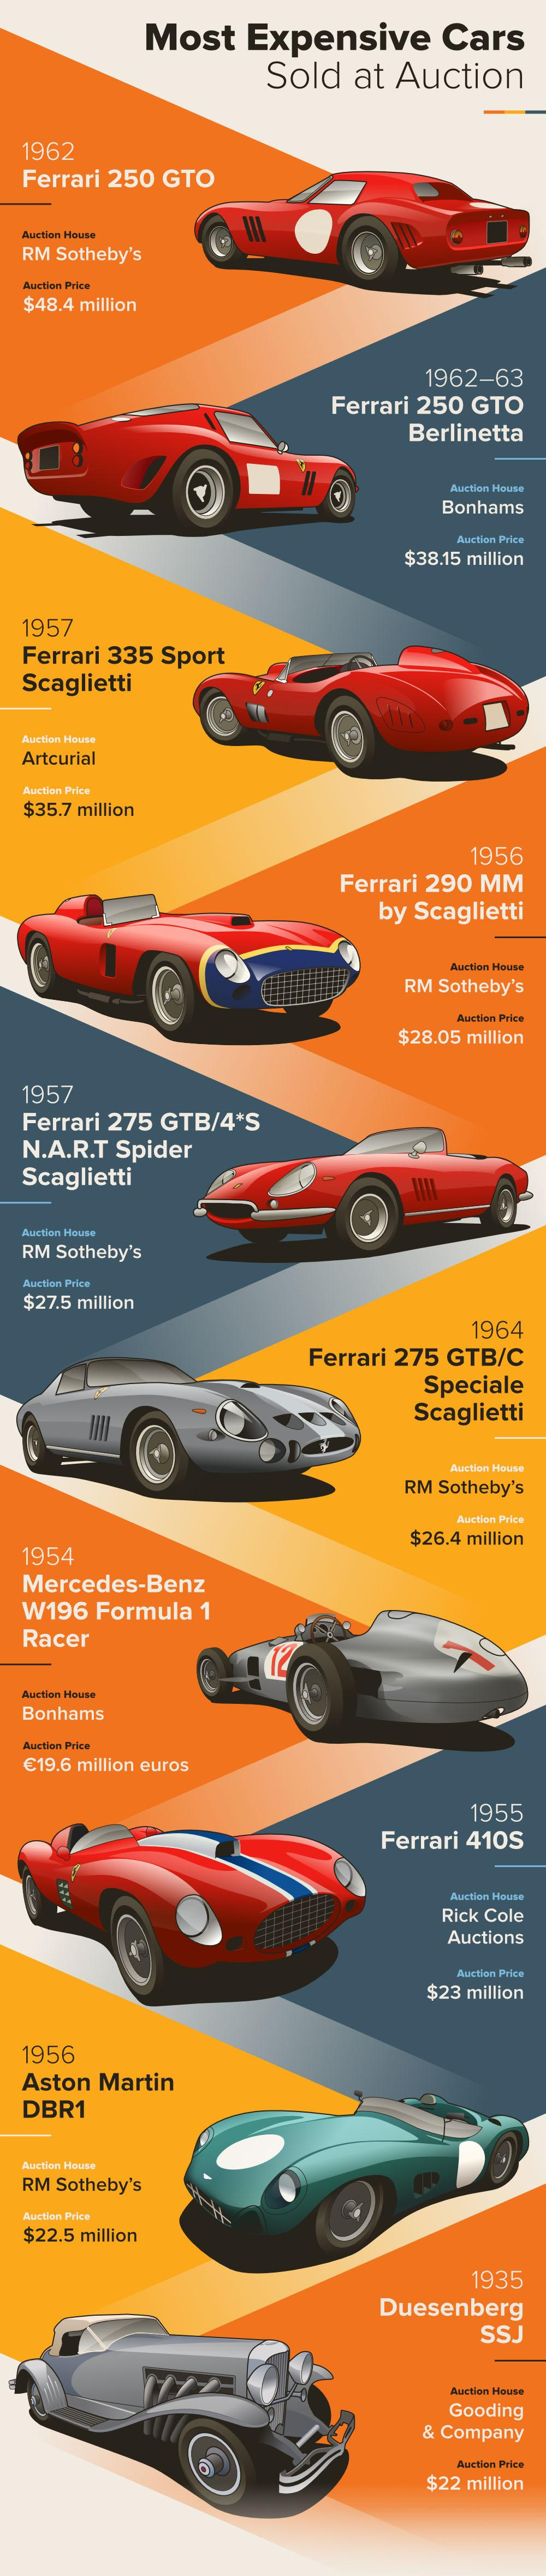 car-rentals-your-guide-of-classic-car-values-04-most-expensive-cars-sold-at-auction